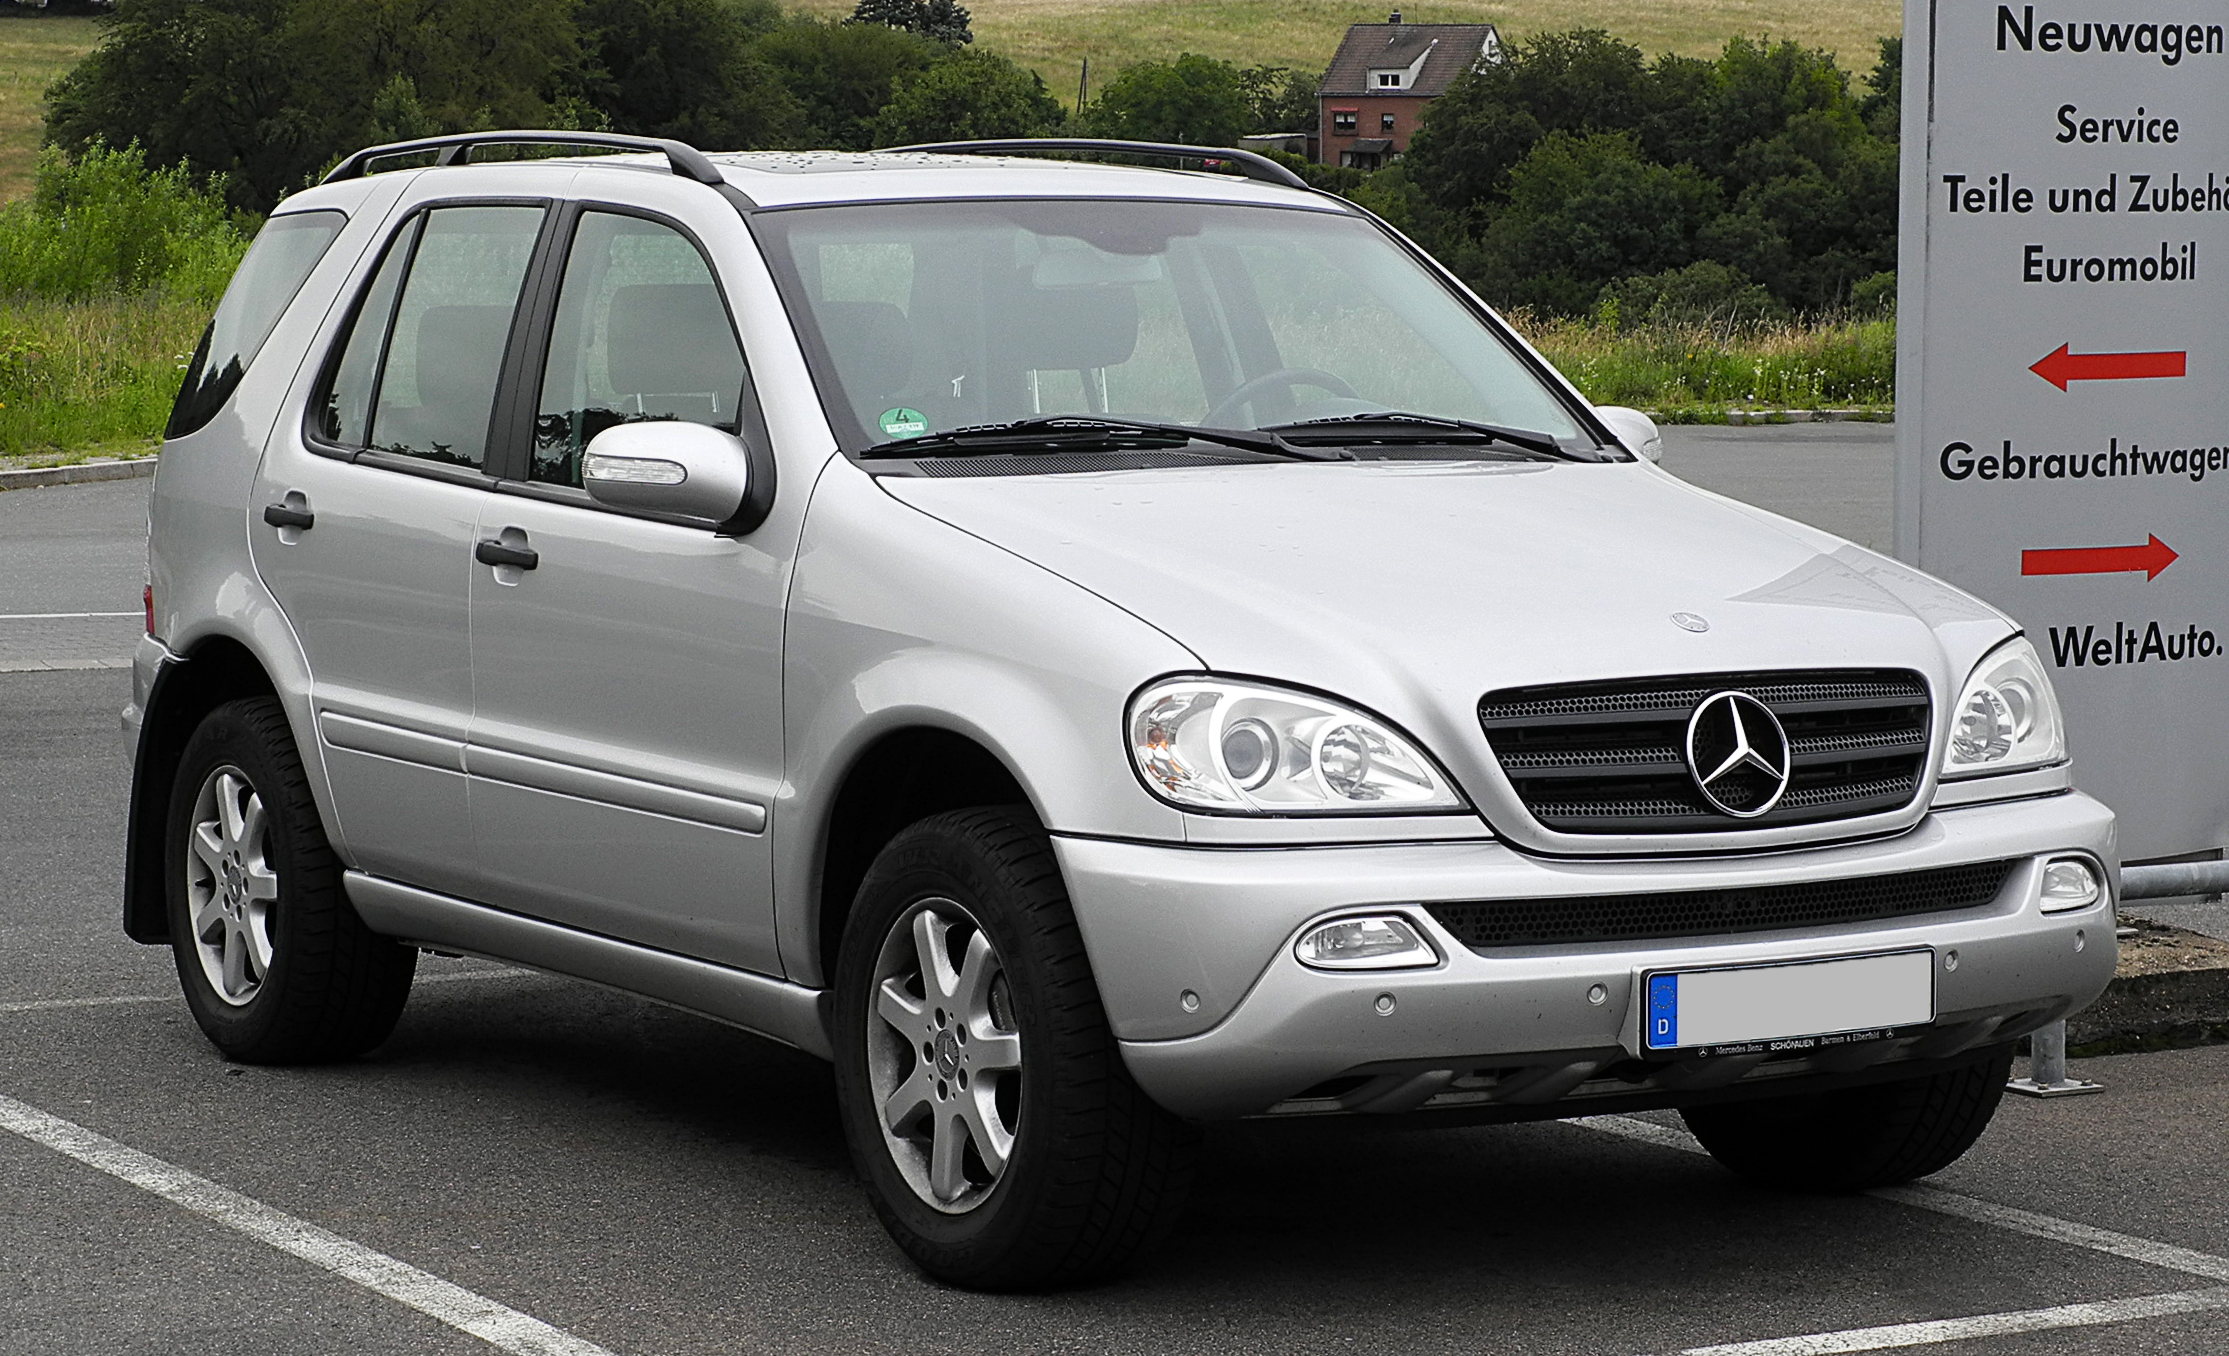 Mercedes Benz Ml 2011 Review Amazing Pictures And Images Look At The Car